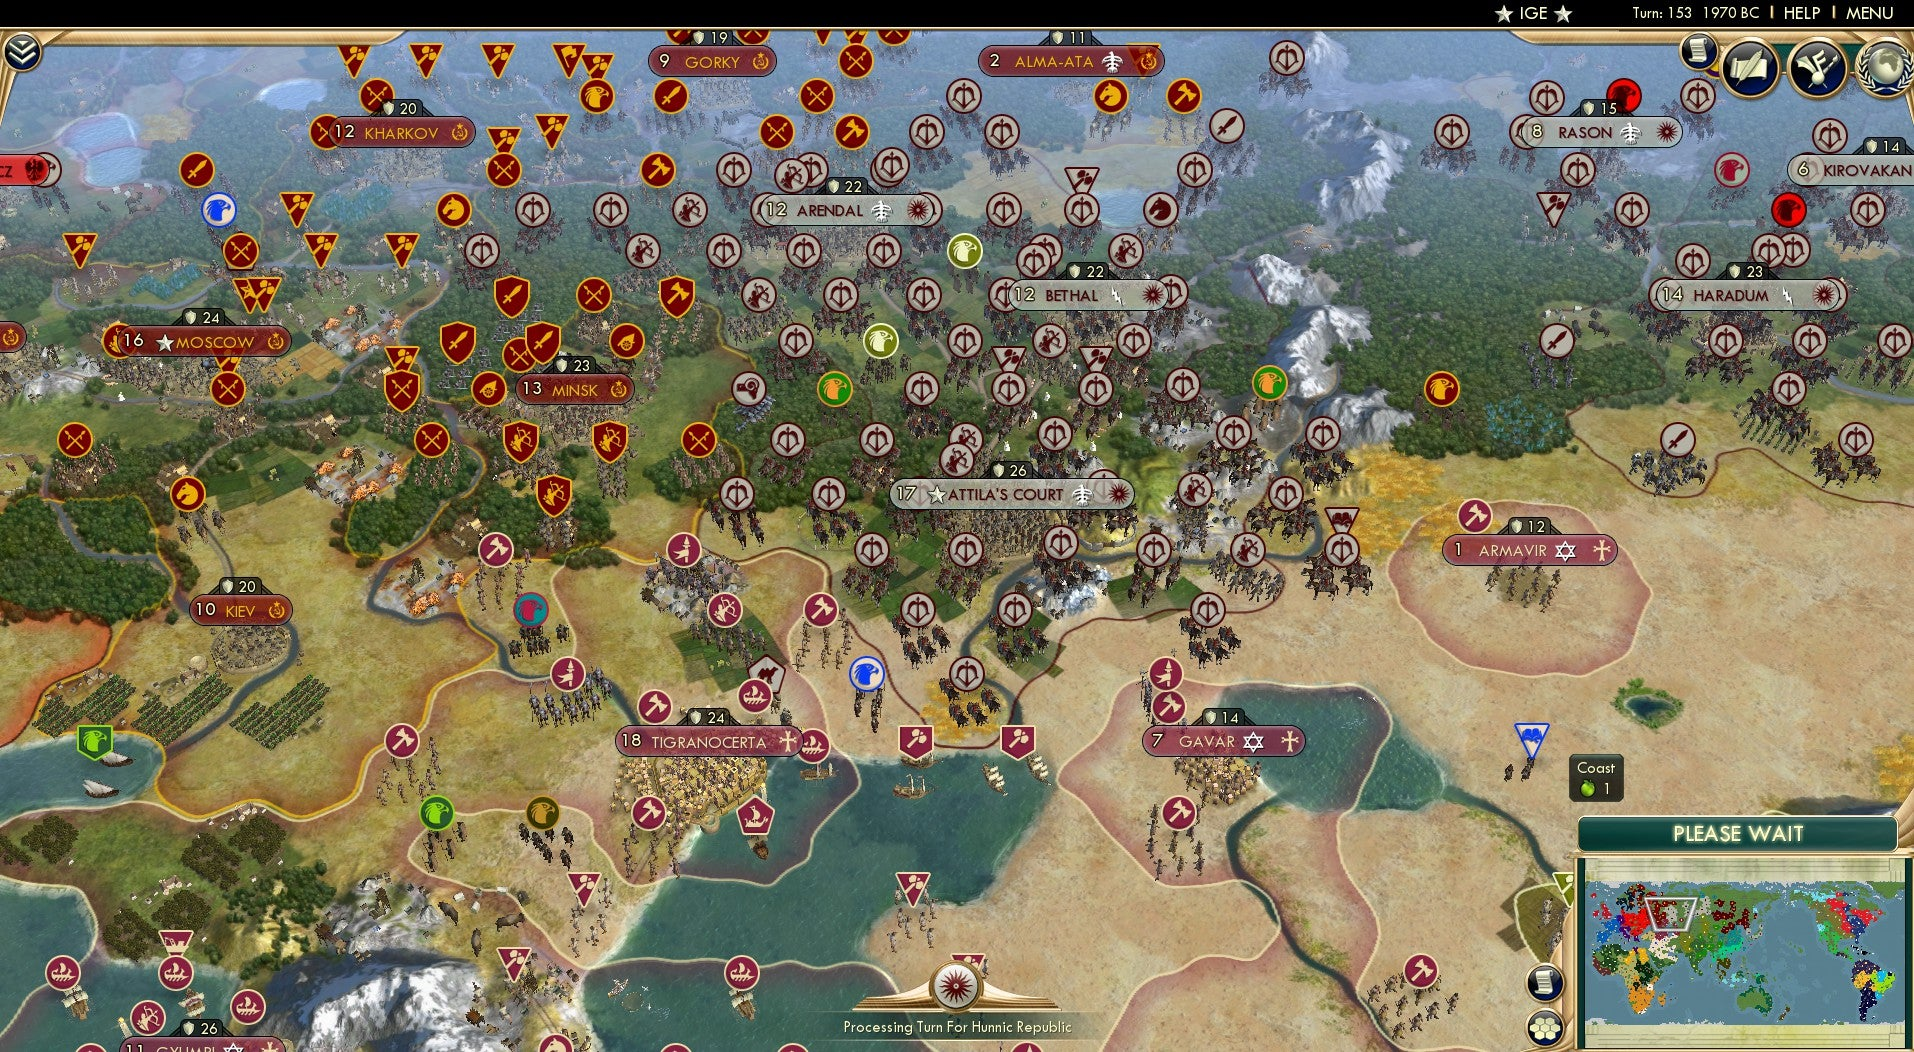 42-Player Civilisation Game Is Destroying The Planet